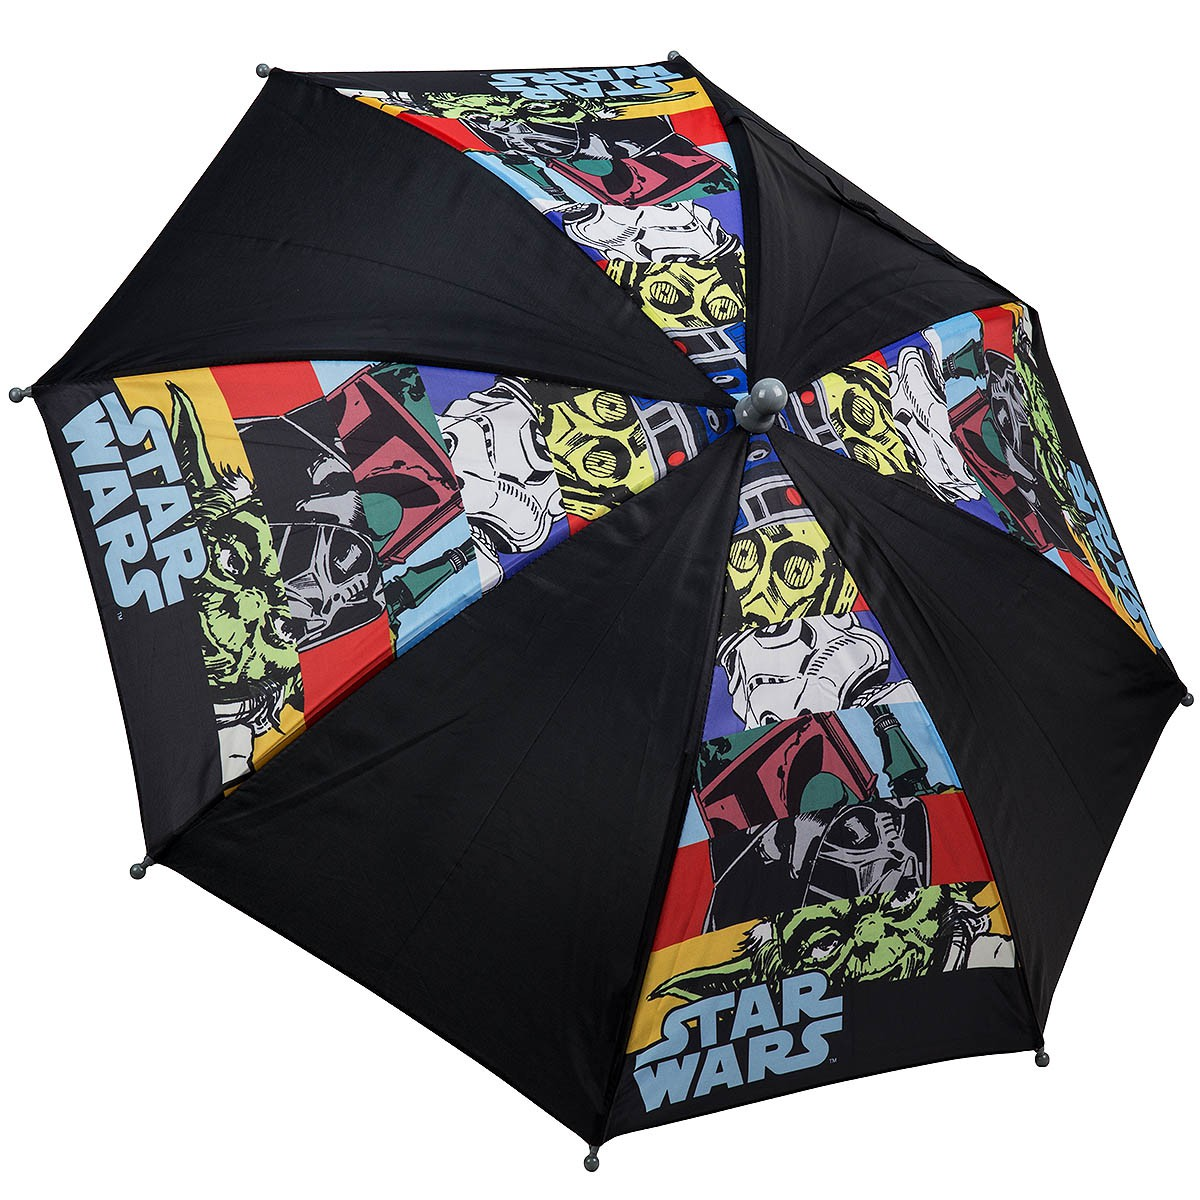 Star Wars Kinder Regenschirm Stockschirm Schirm Kinderschirm STAR005001